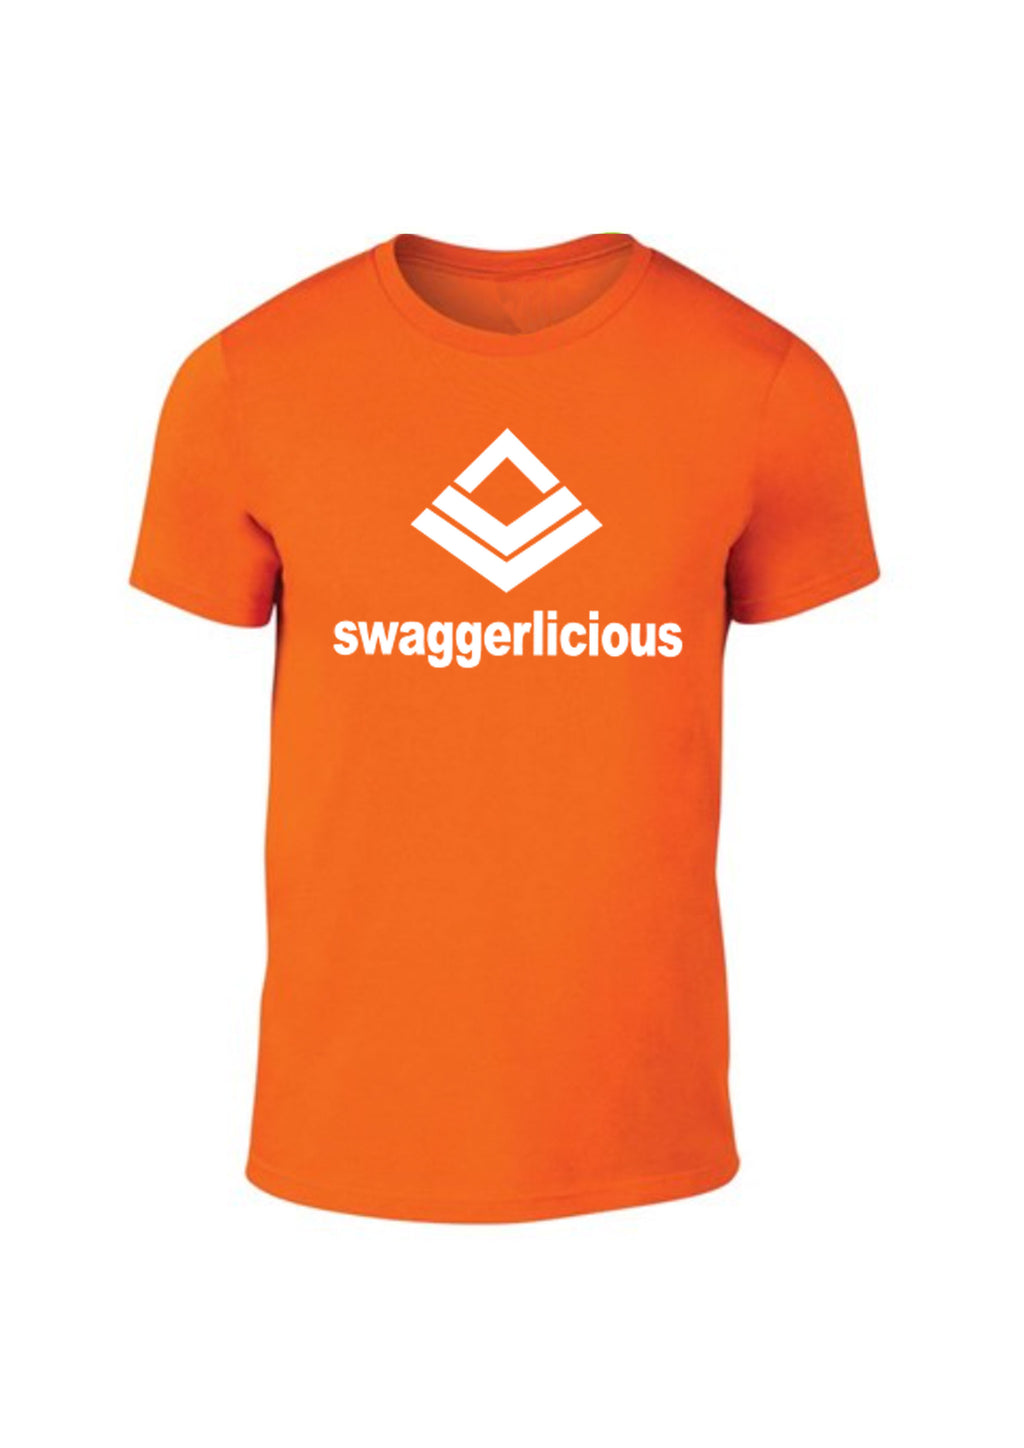 Swaggerlicious Classic Neon Orange Light Sport Tee - swaggerlicious-clothing.com